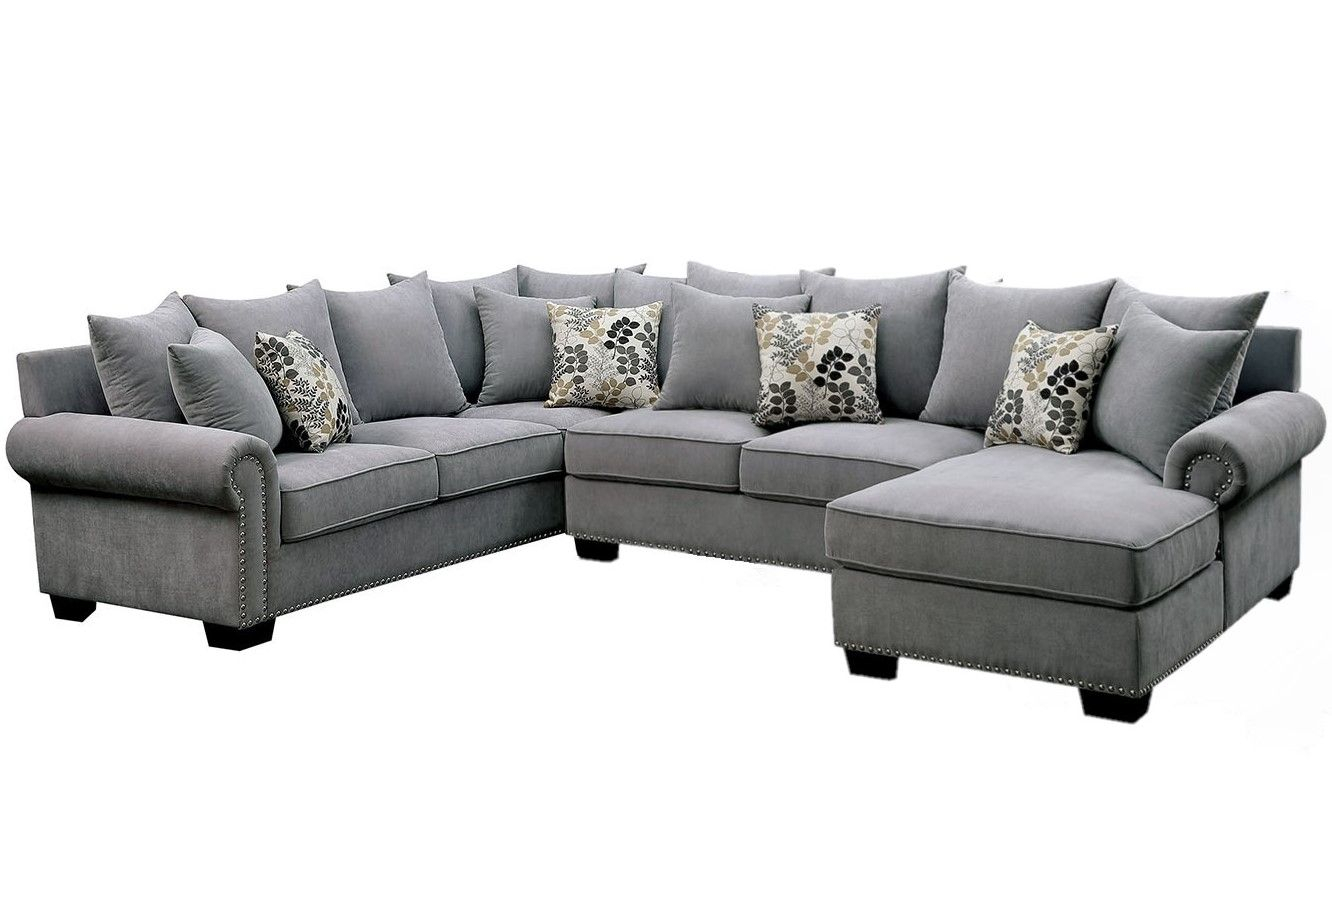 Skyler Ii Transitional Gray Fabric Upholstered Sectional Regarding 2Pc Polyfiber Sectional Sofas With Nailhead Trims Gray (View 10 of 15)